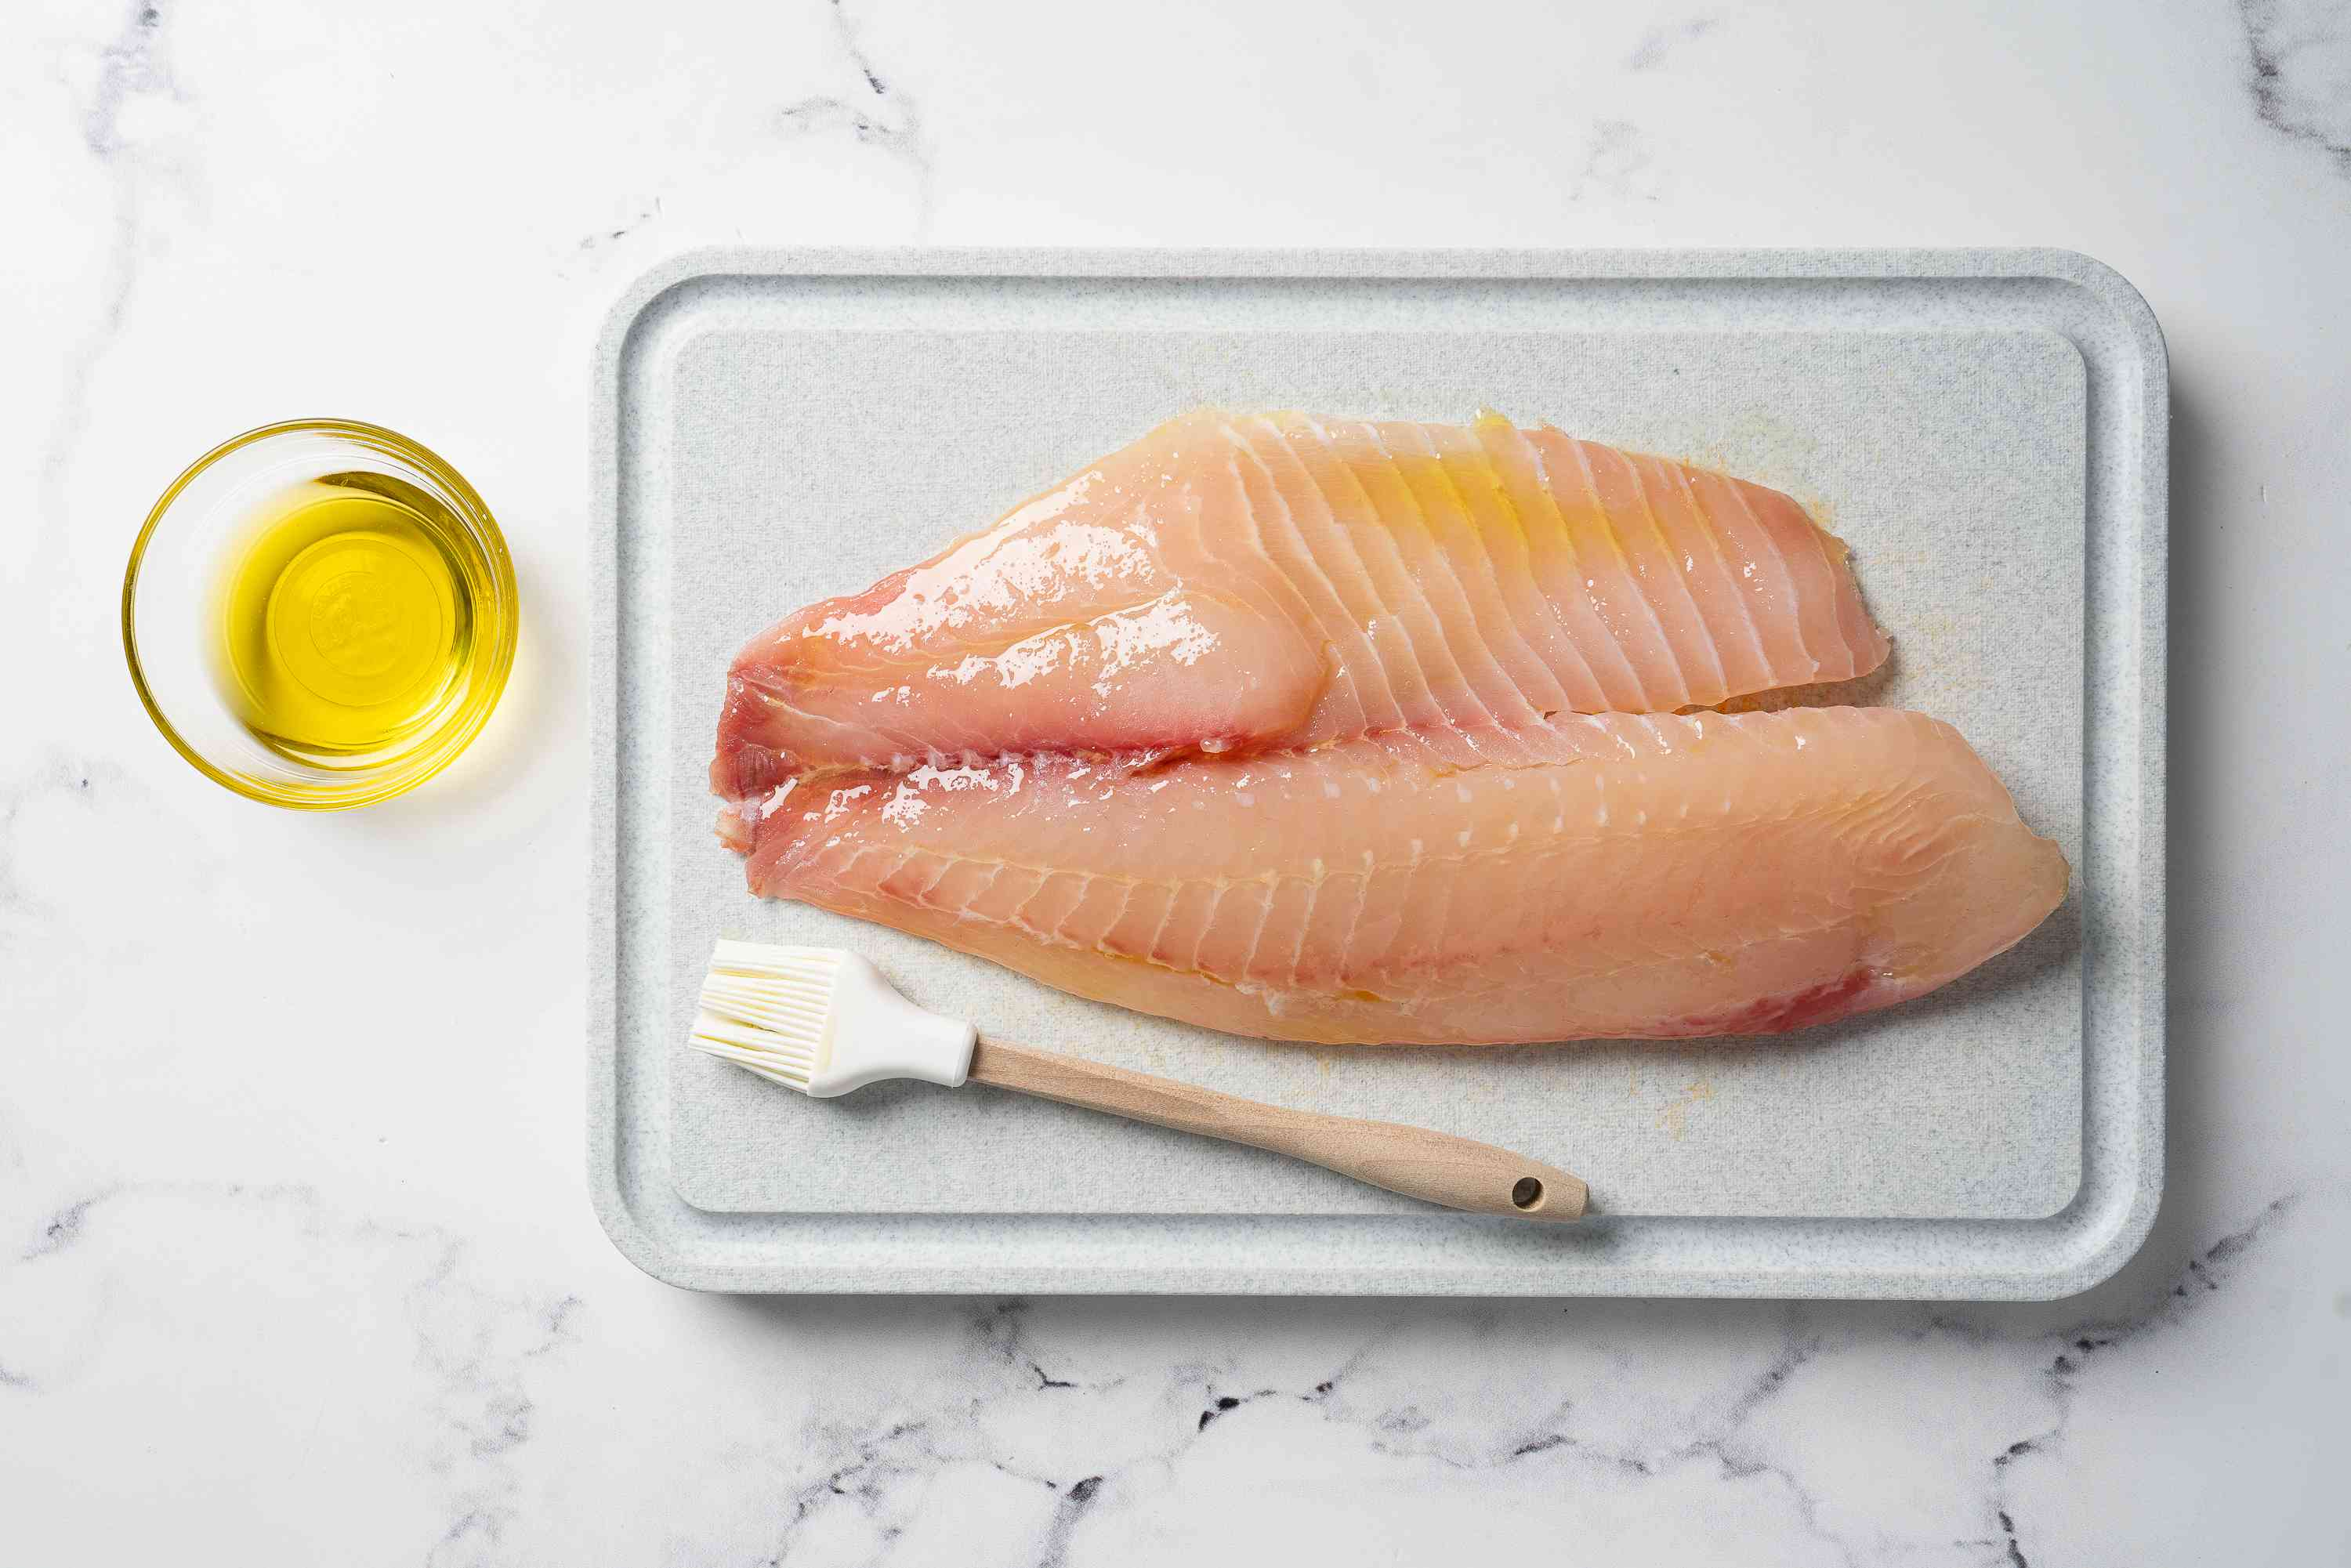 Tilapia brushed with oil